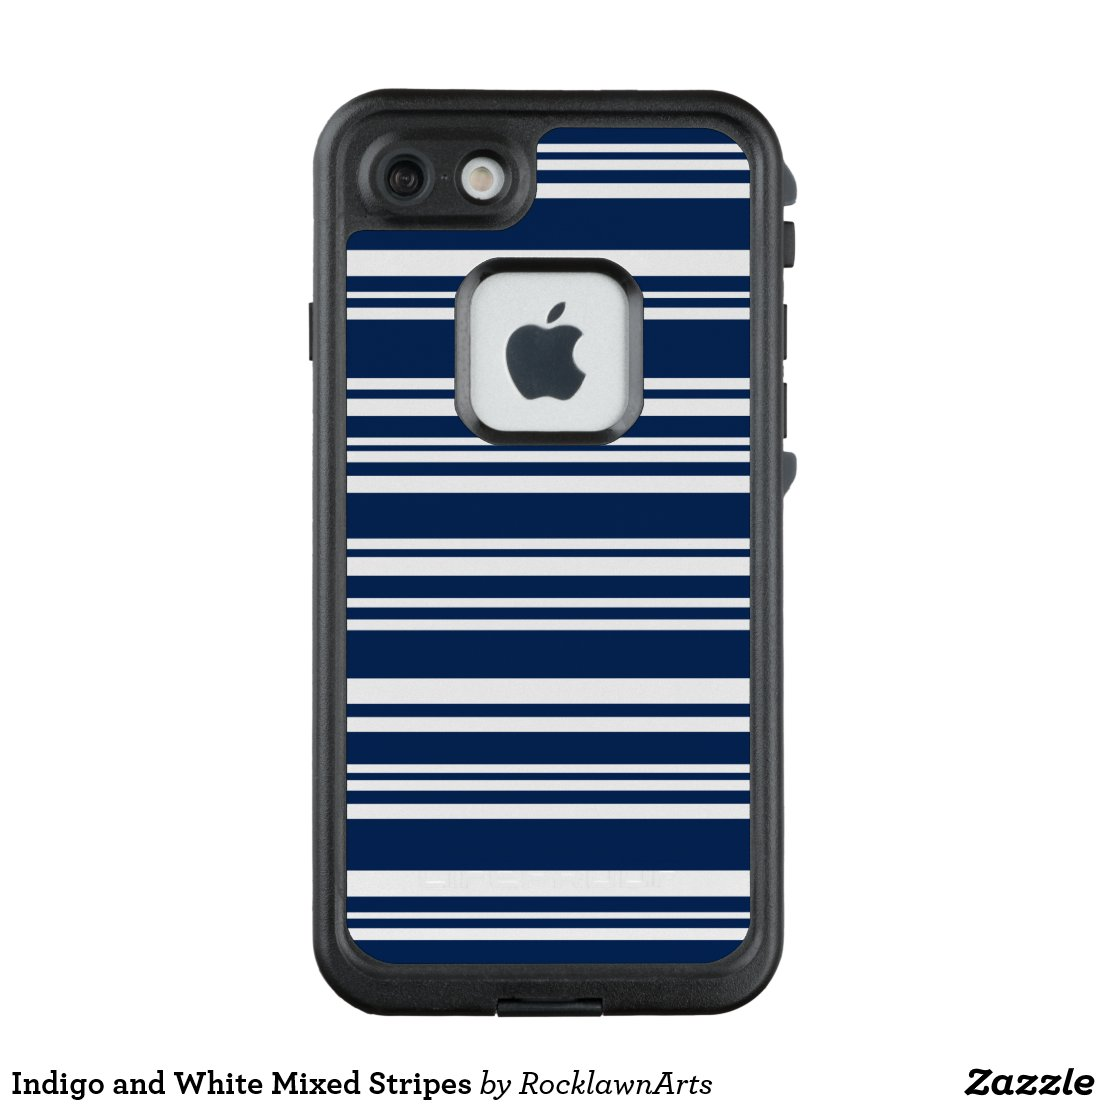 Indigo and White Mixed Stripes LifeProof FRĒ iPhone 7 Case